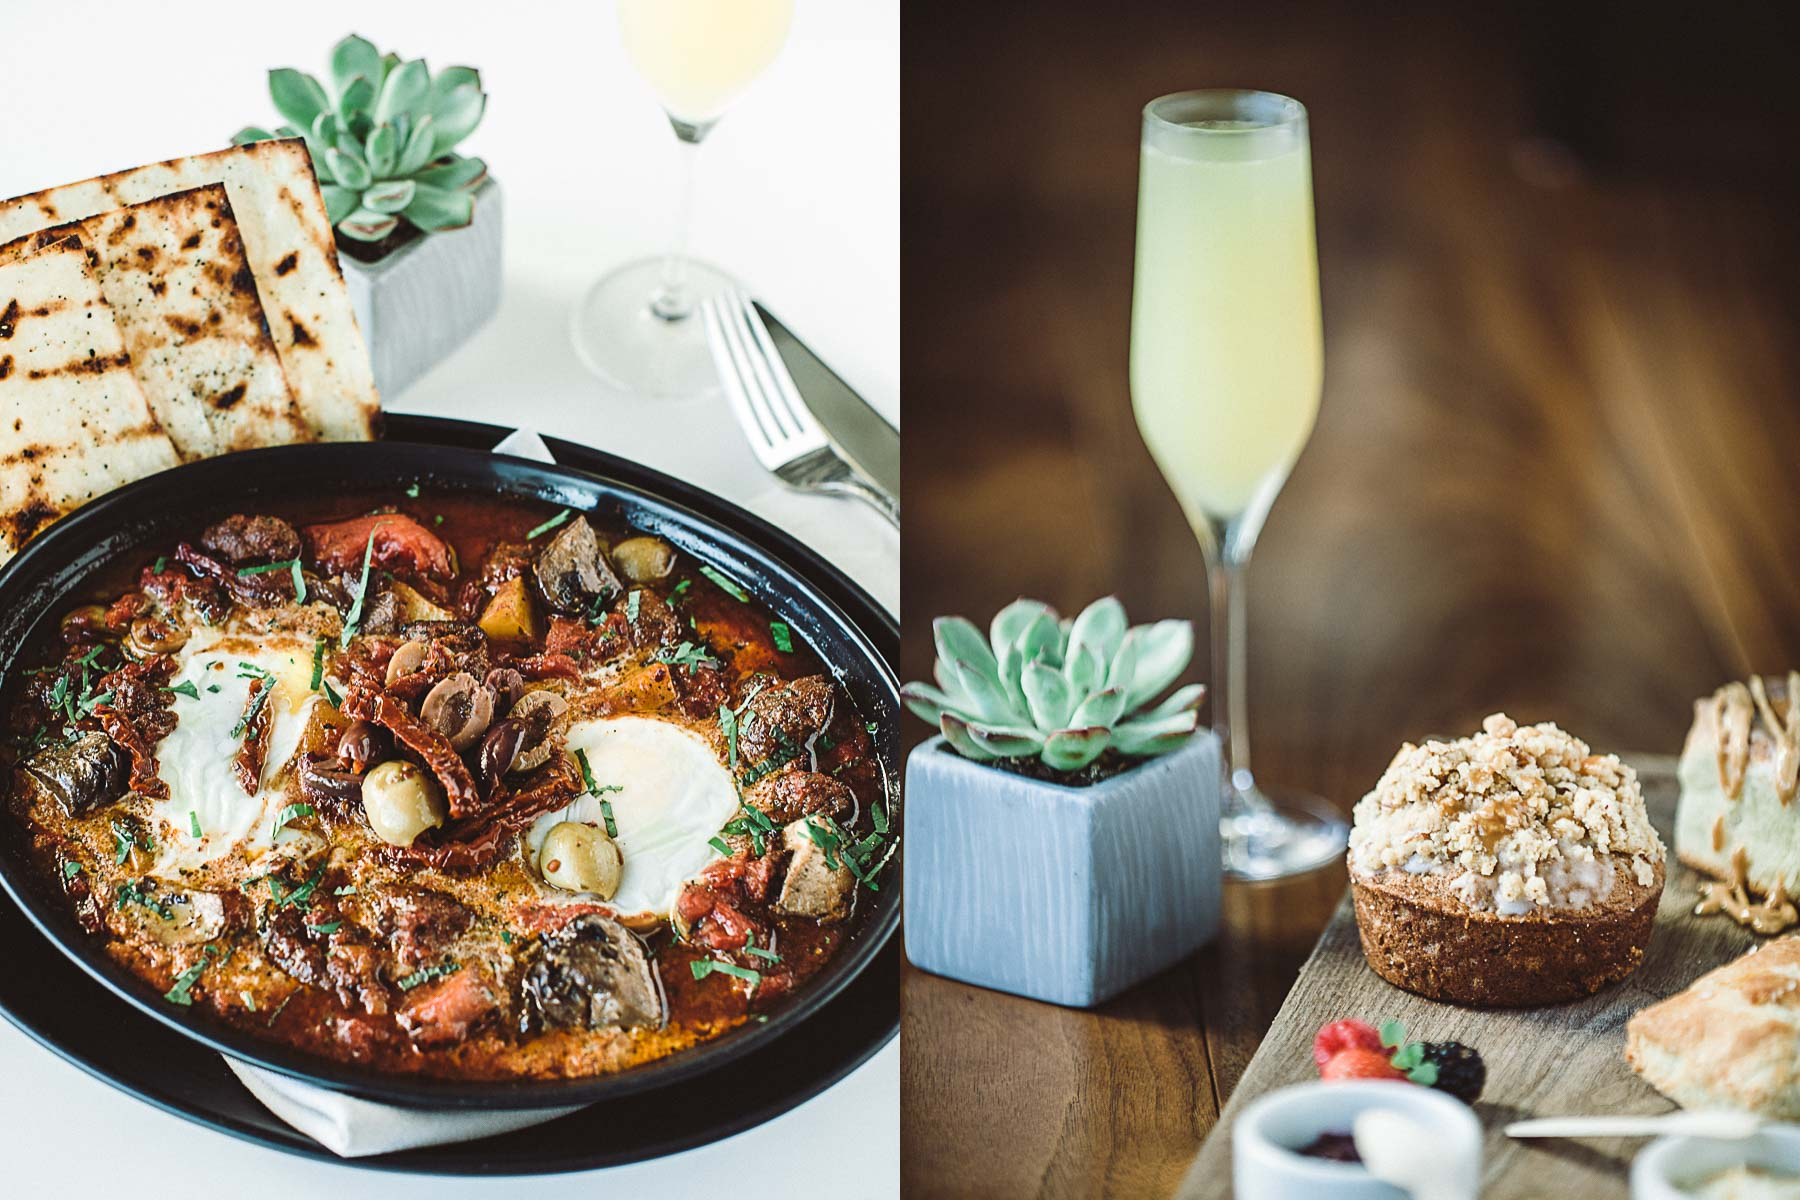 Breakfast hash and mimosas with bread board in Jacksonville, Florida.